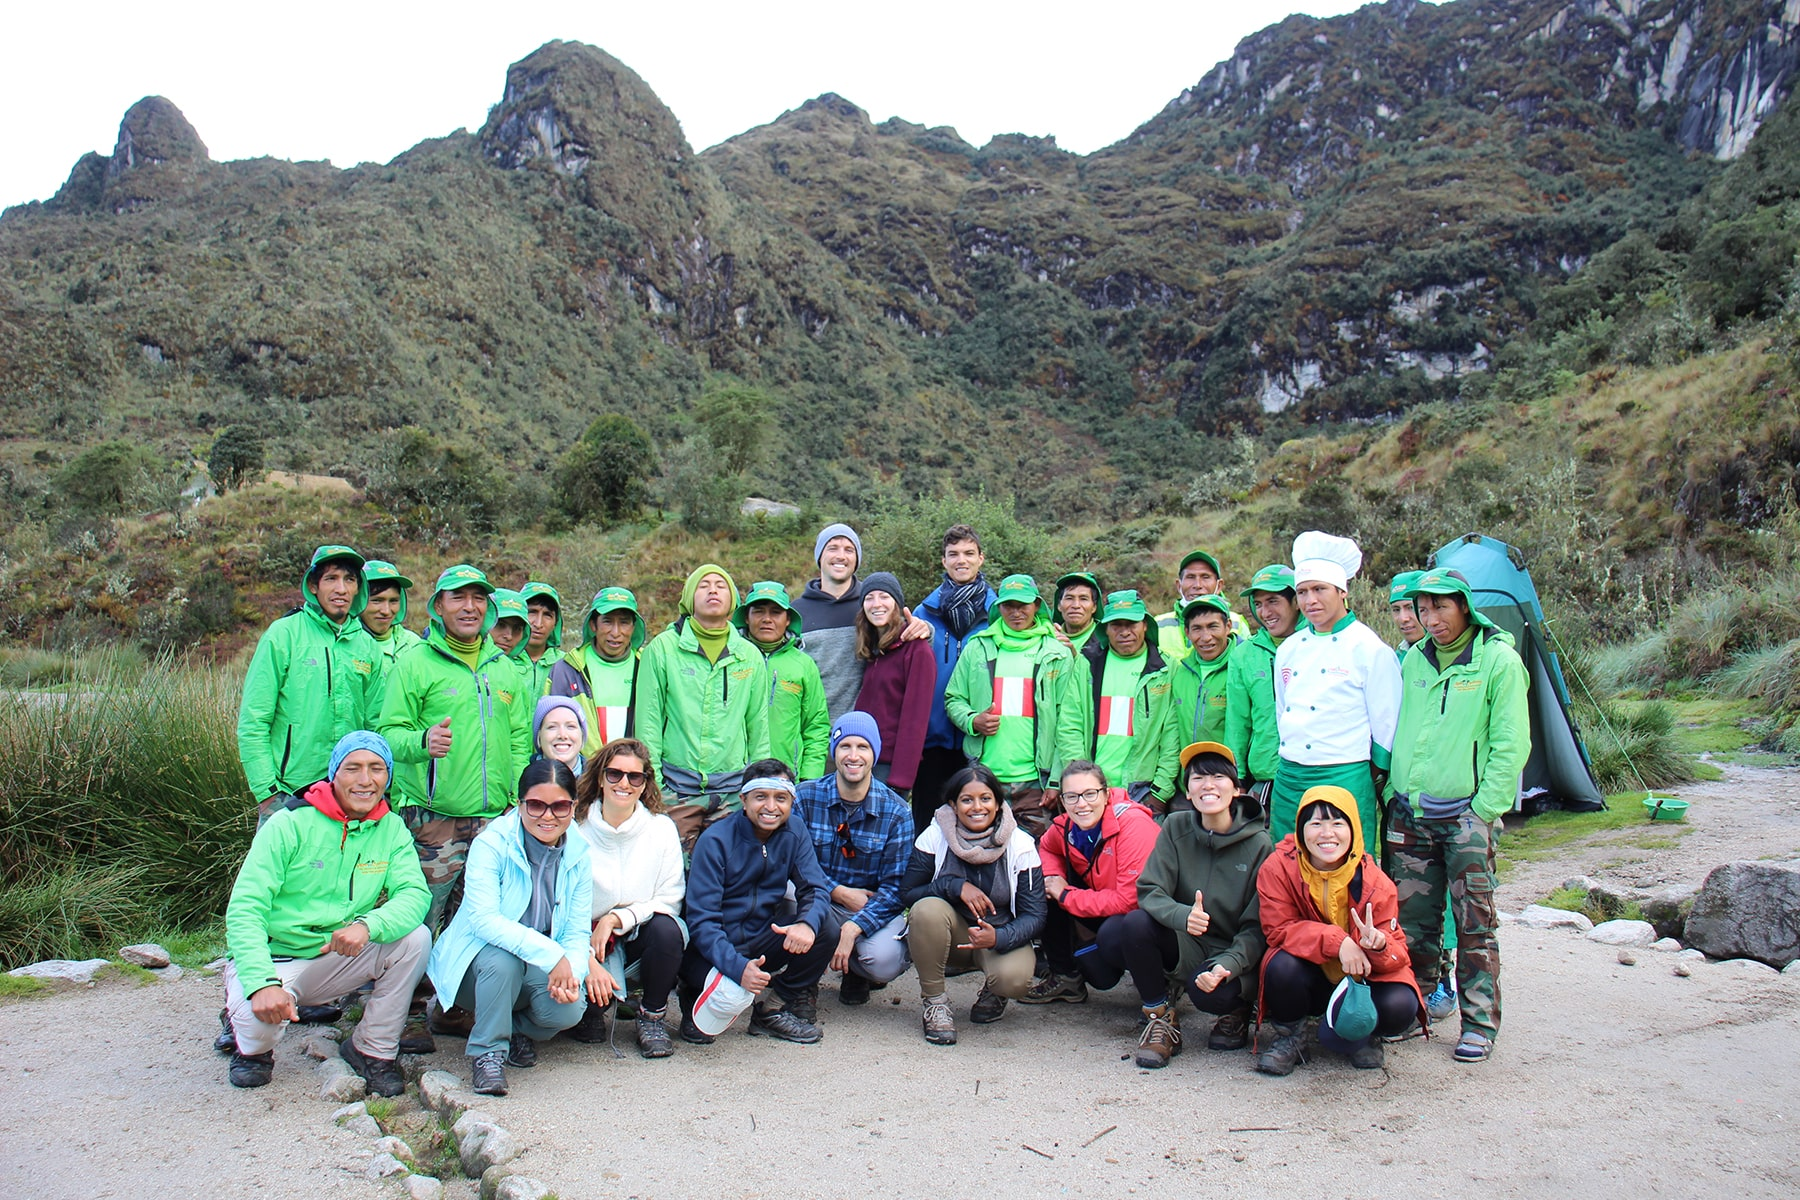 Our group on inca trail